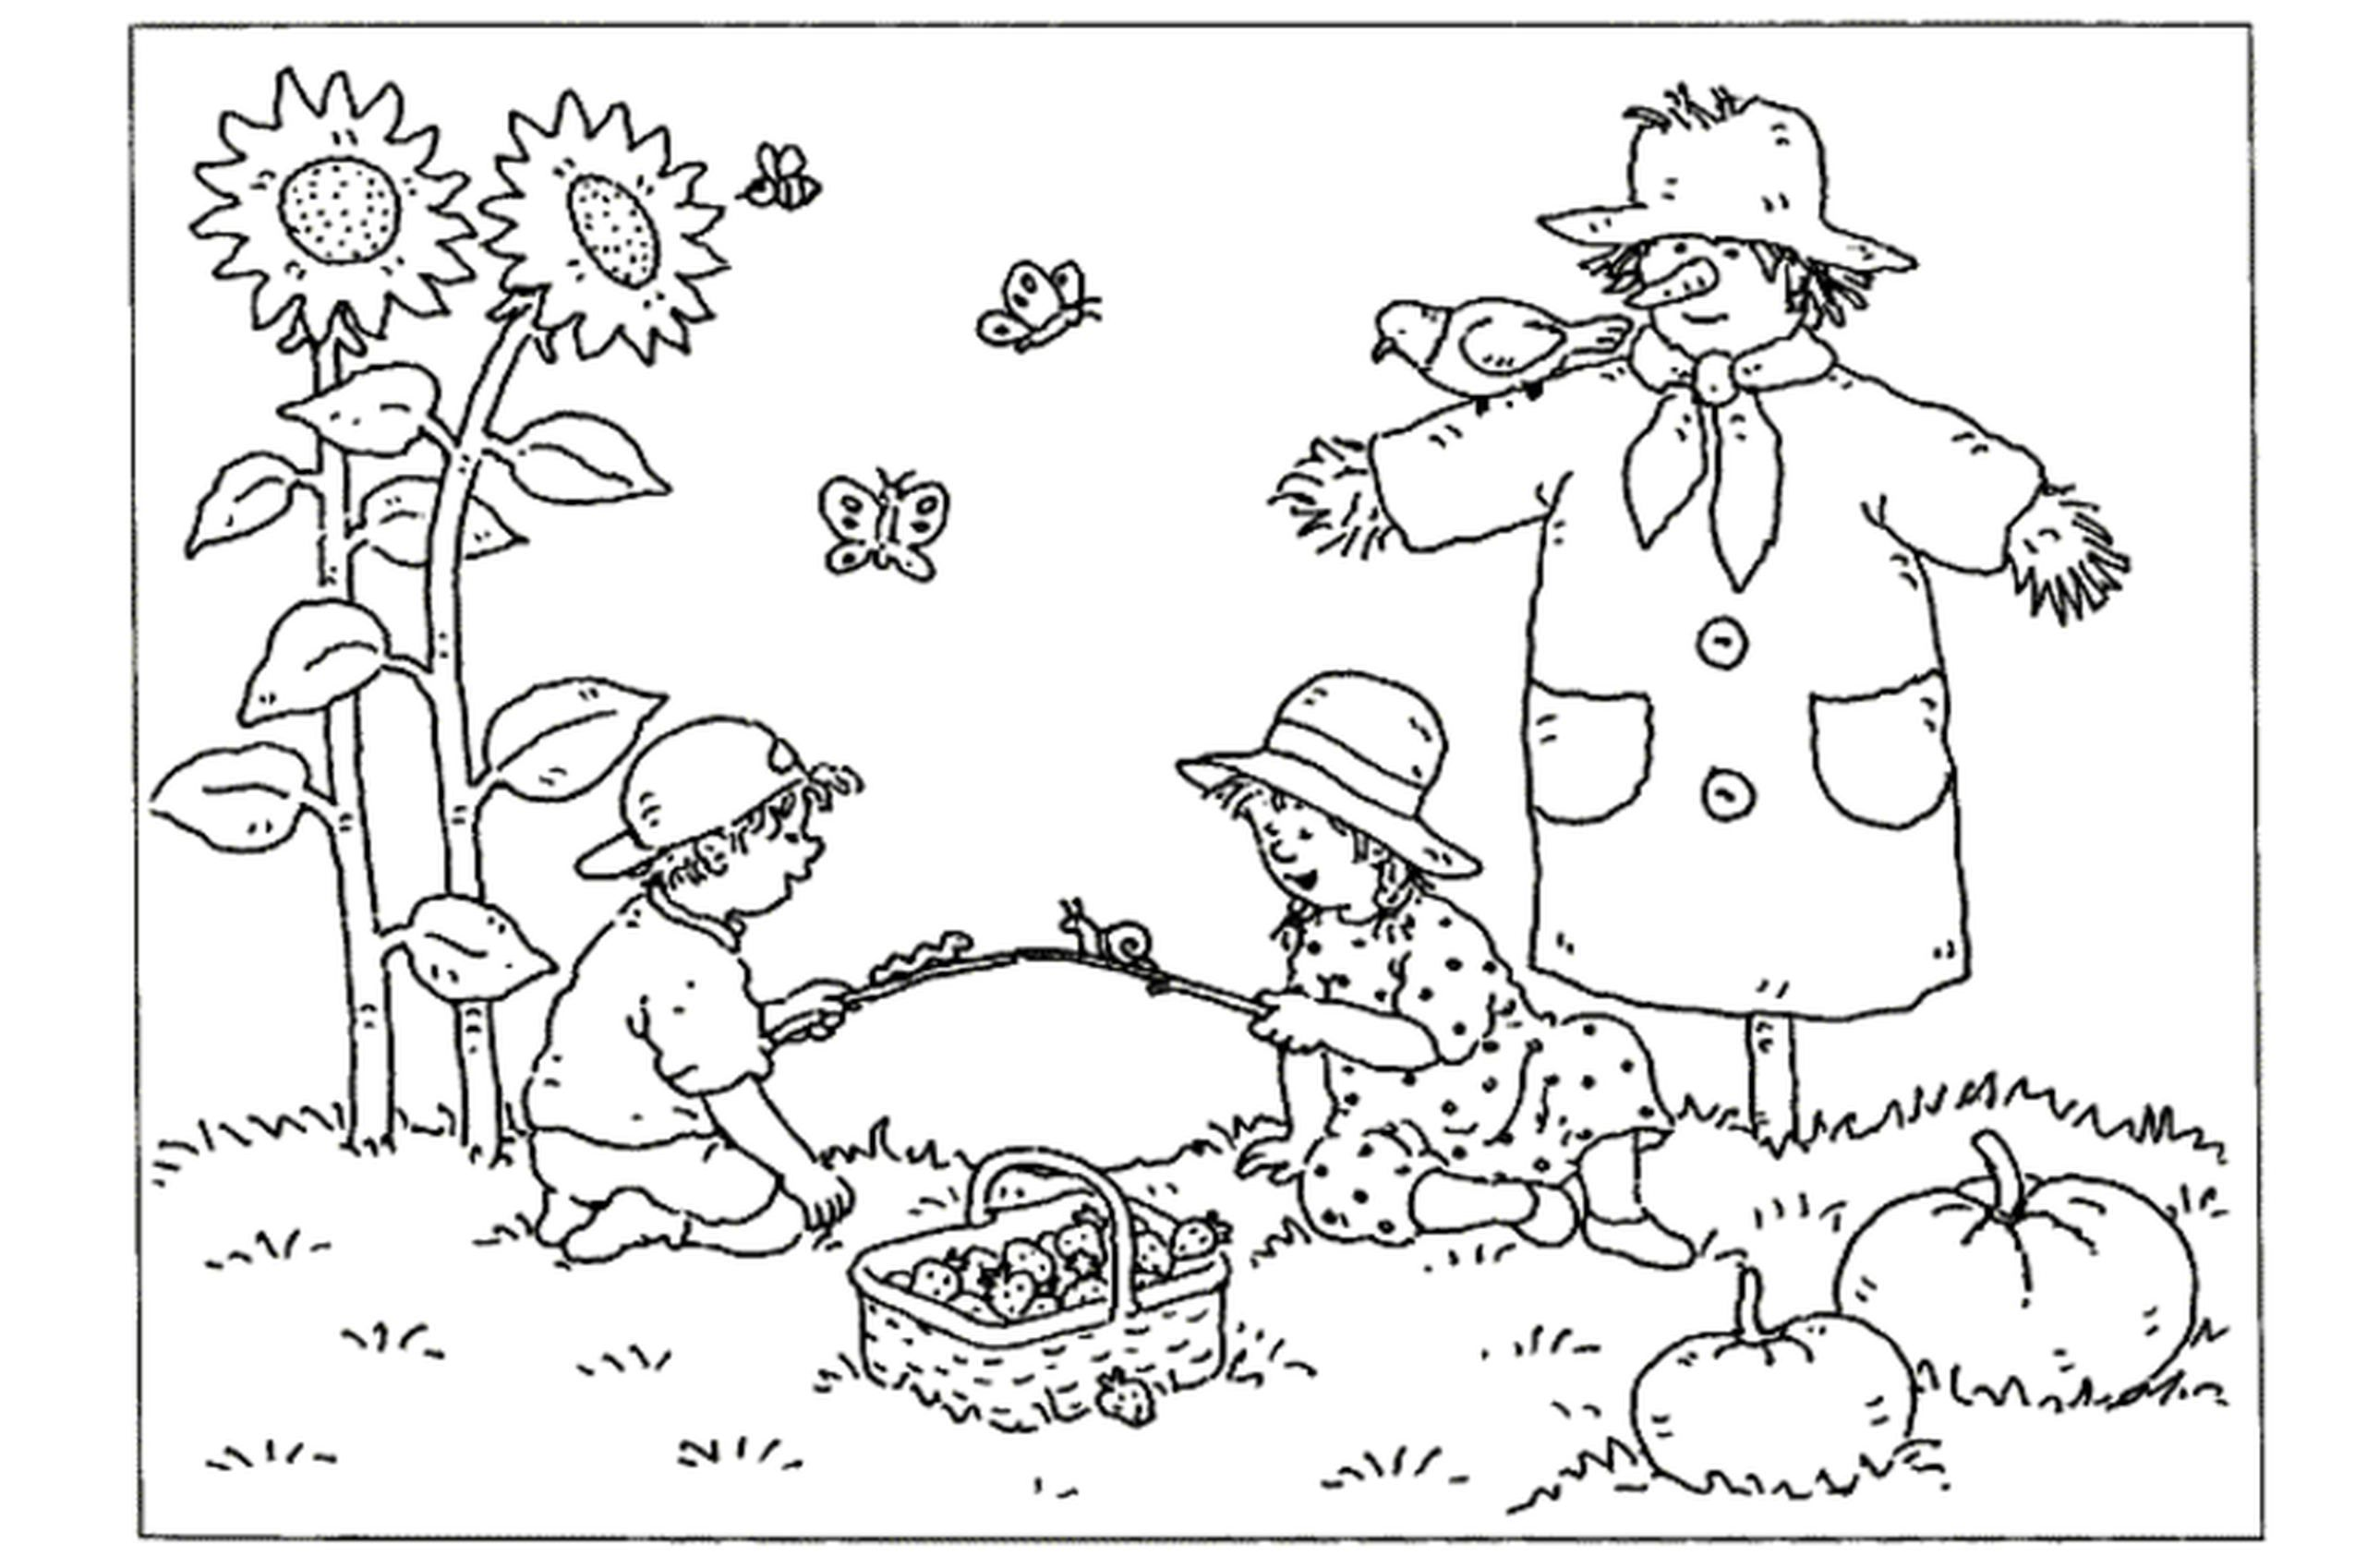 Coloring Pages Autumn Coloring Pages For Kids free fall coloring pages printable az halloween